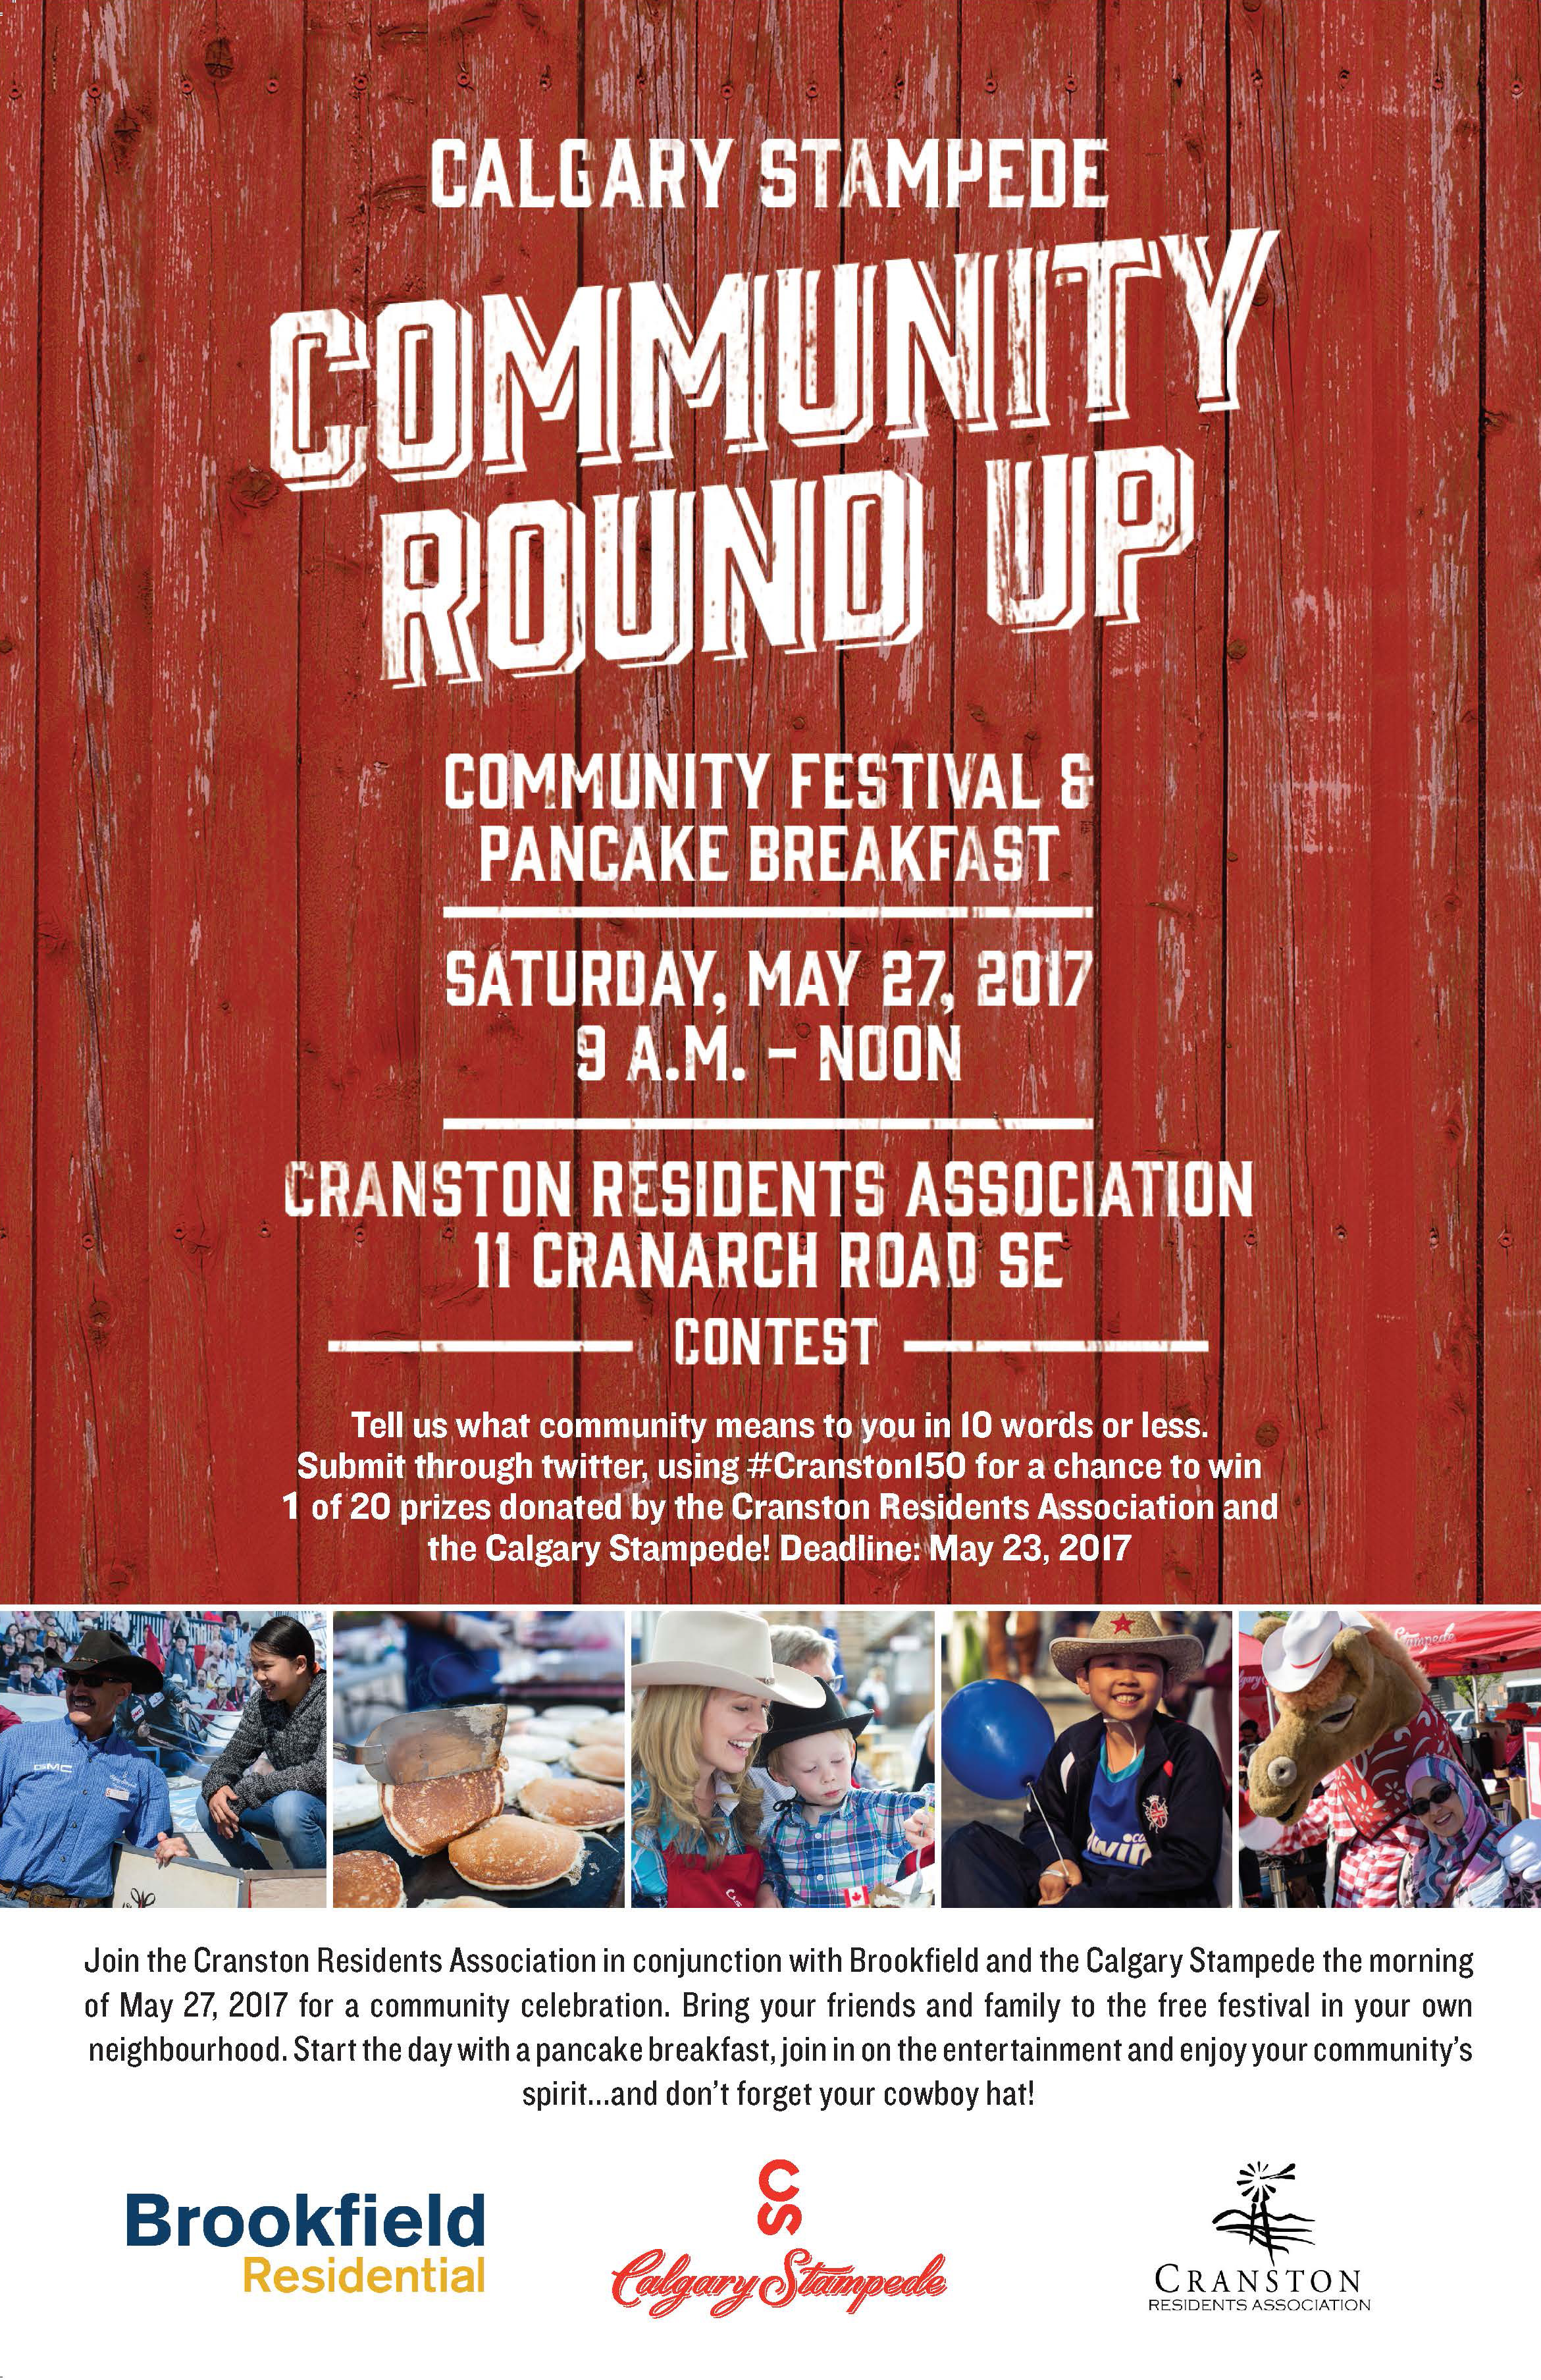 Calgary Stampede Community Round Up in Cranston 2017